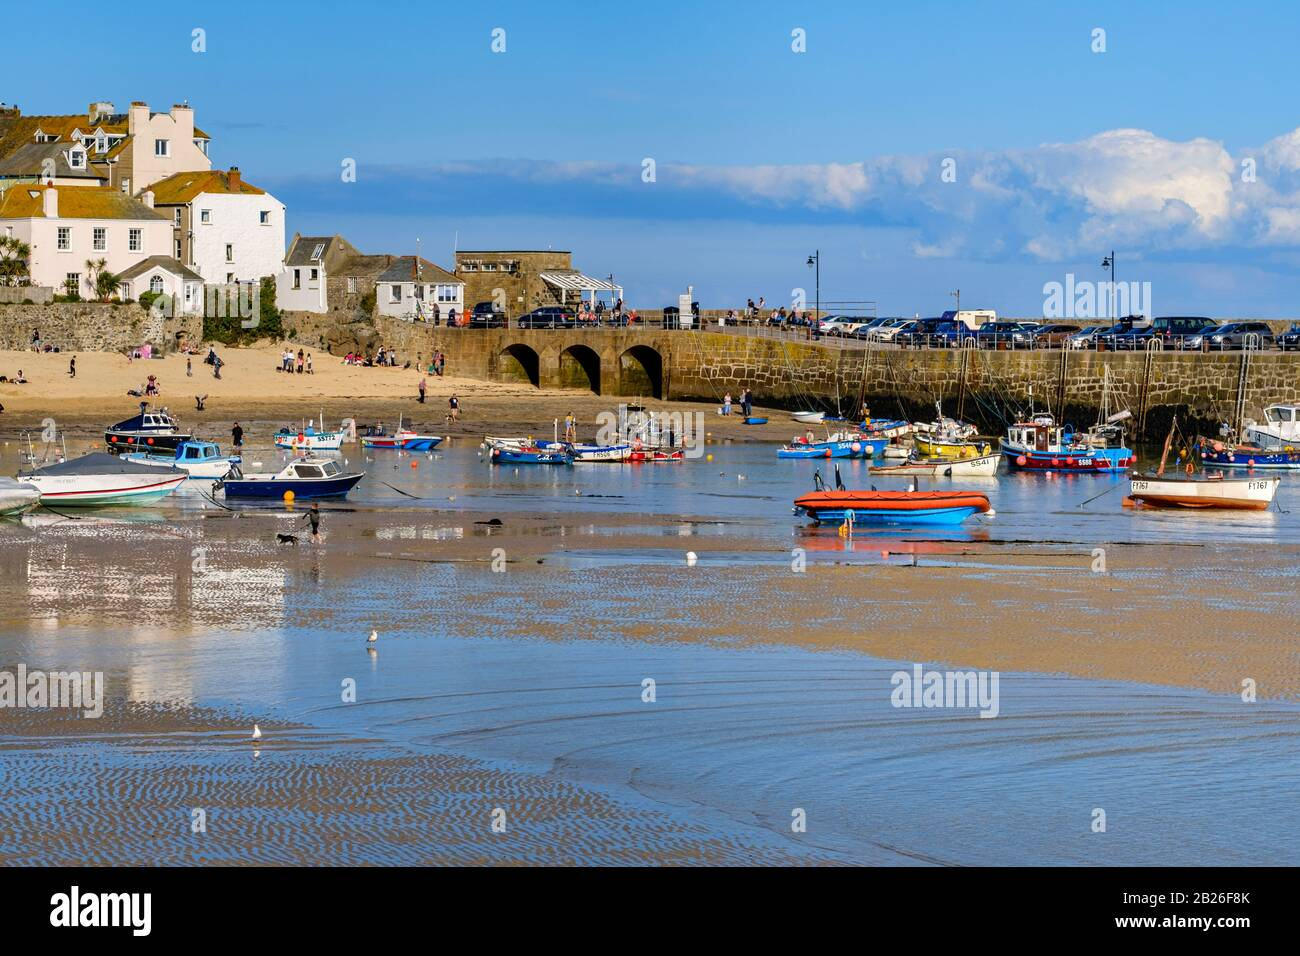 Harbour beach to the Harbour at St Ives with houses and Smeatons Pier in the distance, people on the beach and fishing boats moored ,Cornwall, S West Stock Photo